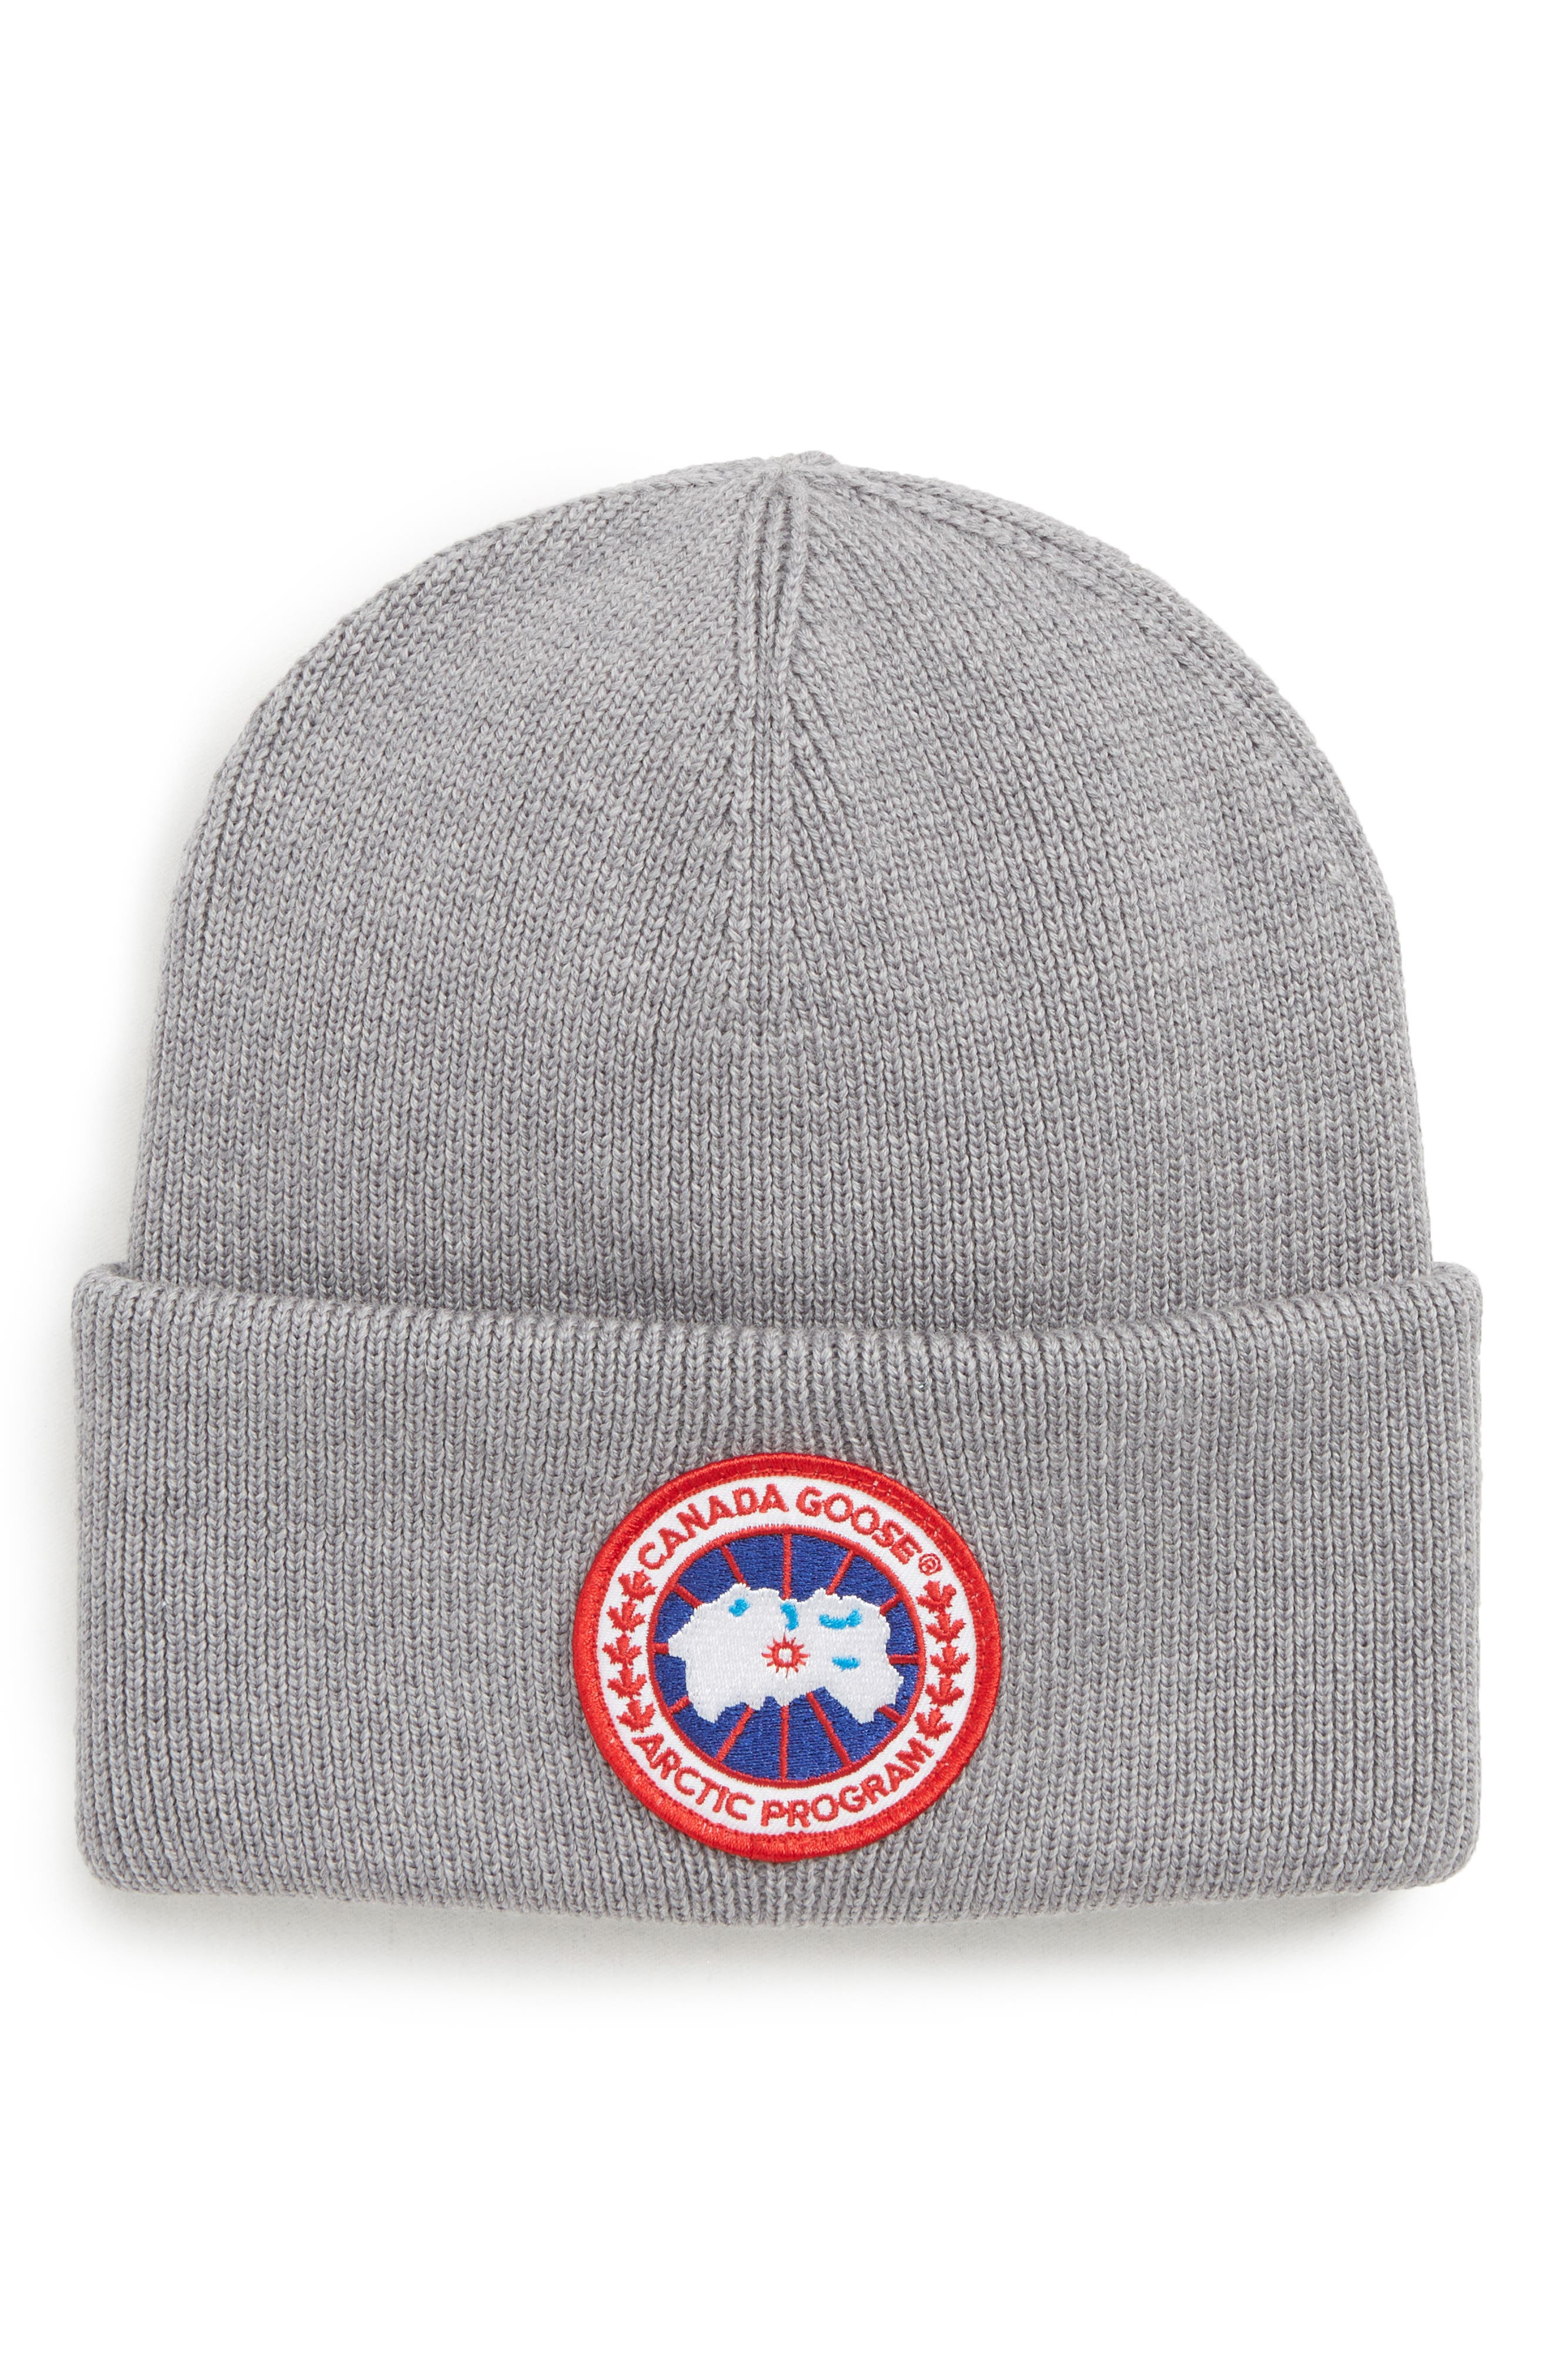 Arctic Disc Merino Wool Toque Beanie - Grey in Heather Grey